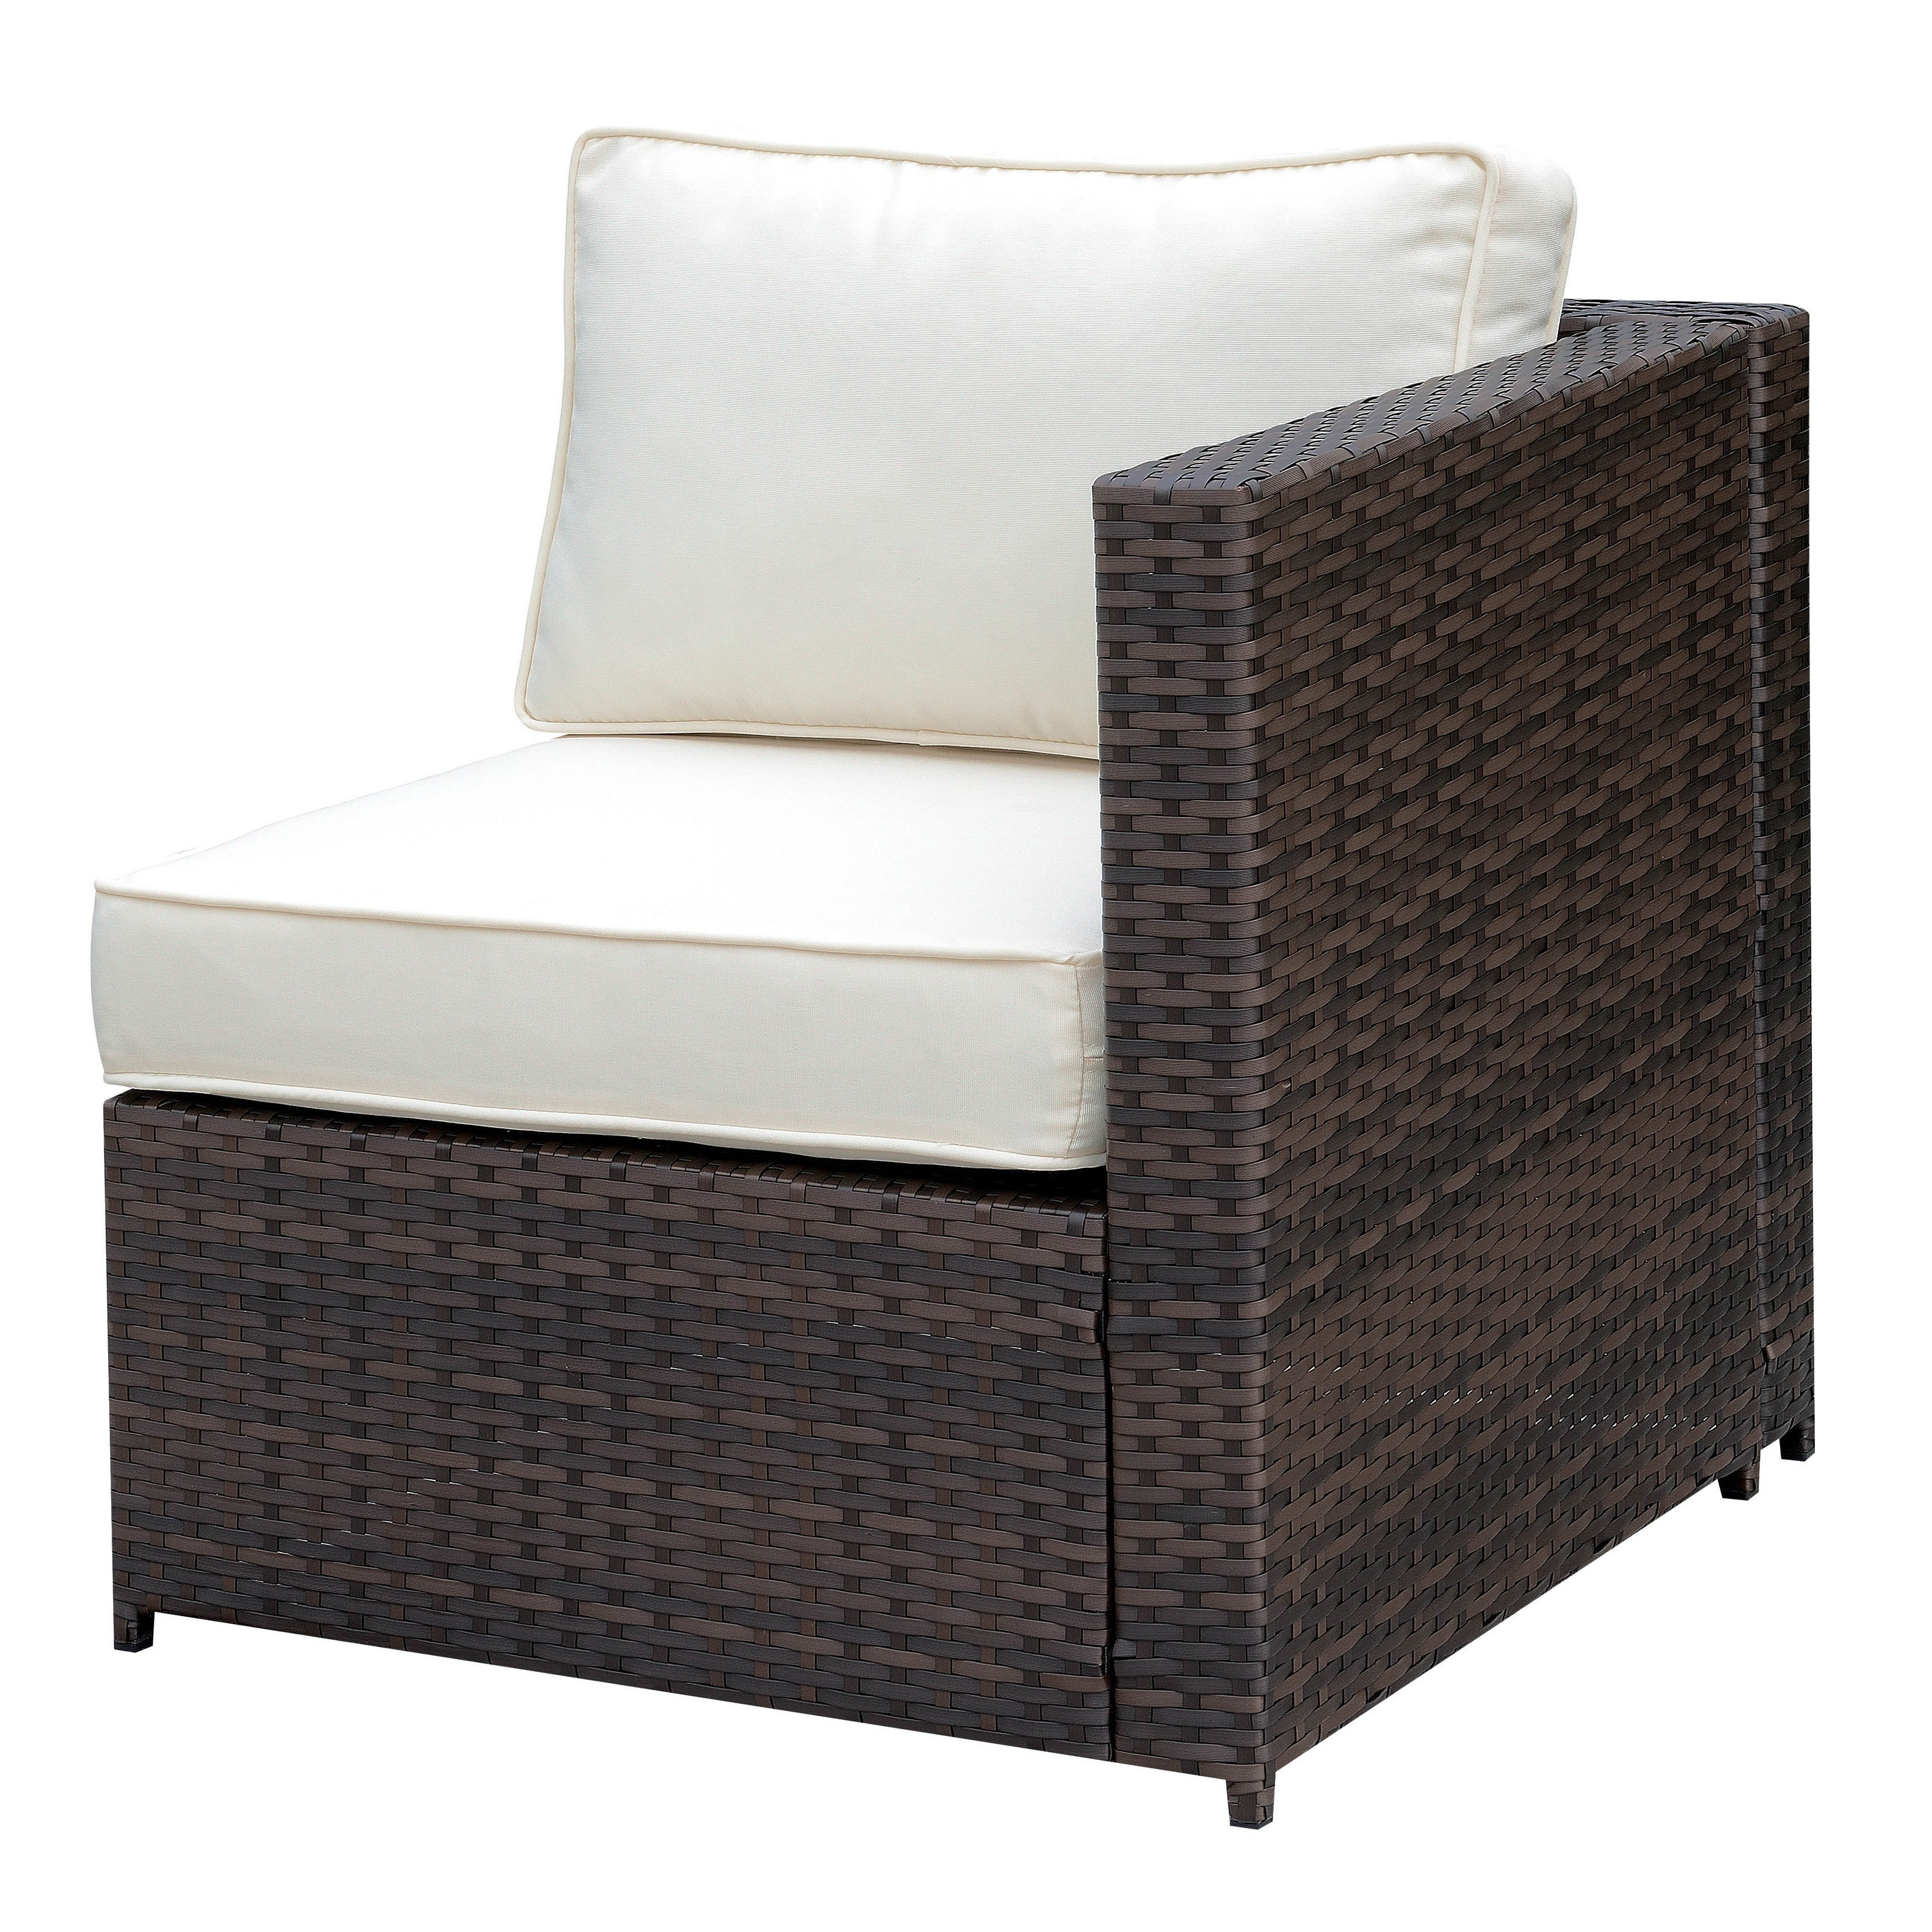 Miraculous Furniture Of America Villa Modular Outdoor Weather Resistant Left Facing Arm Chair Pdpeps Interior Chair Design Pdpepsorg